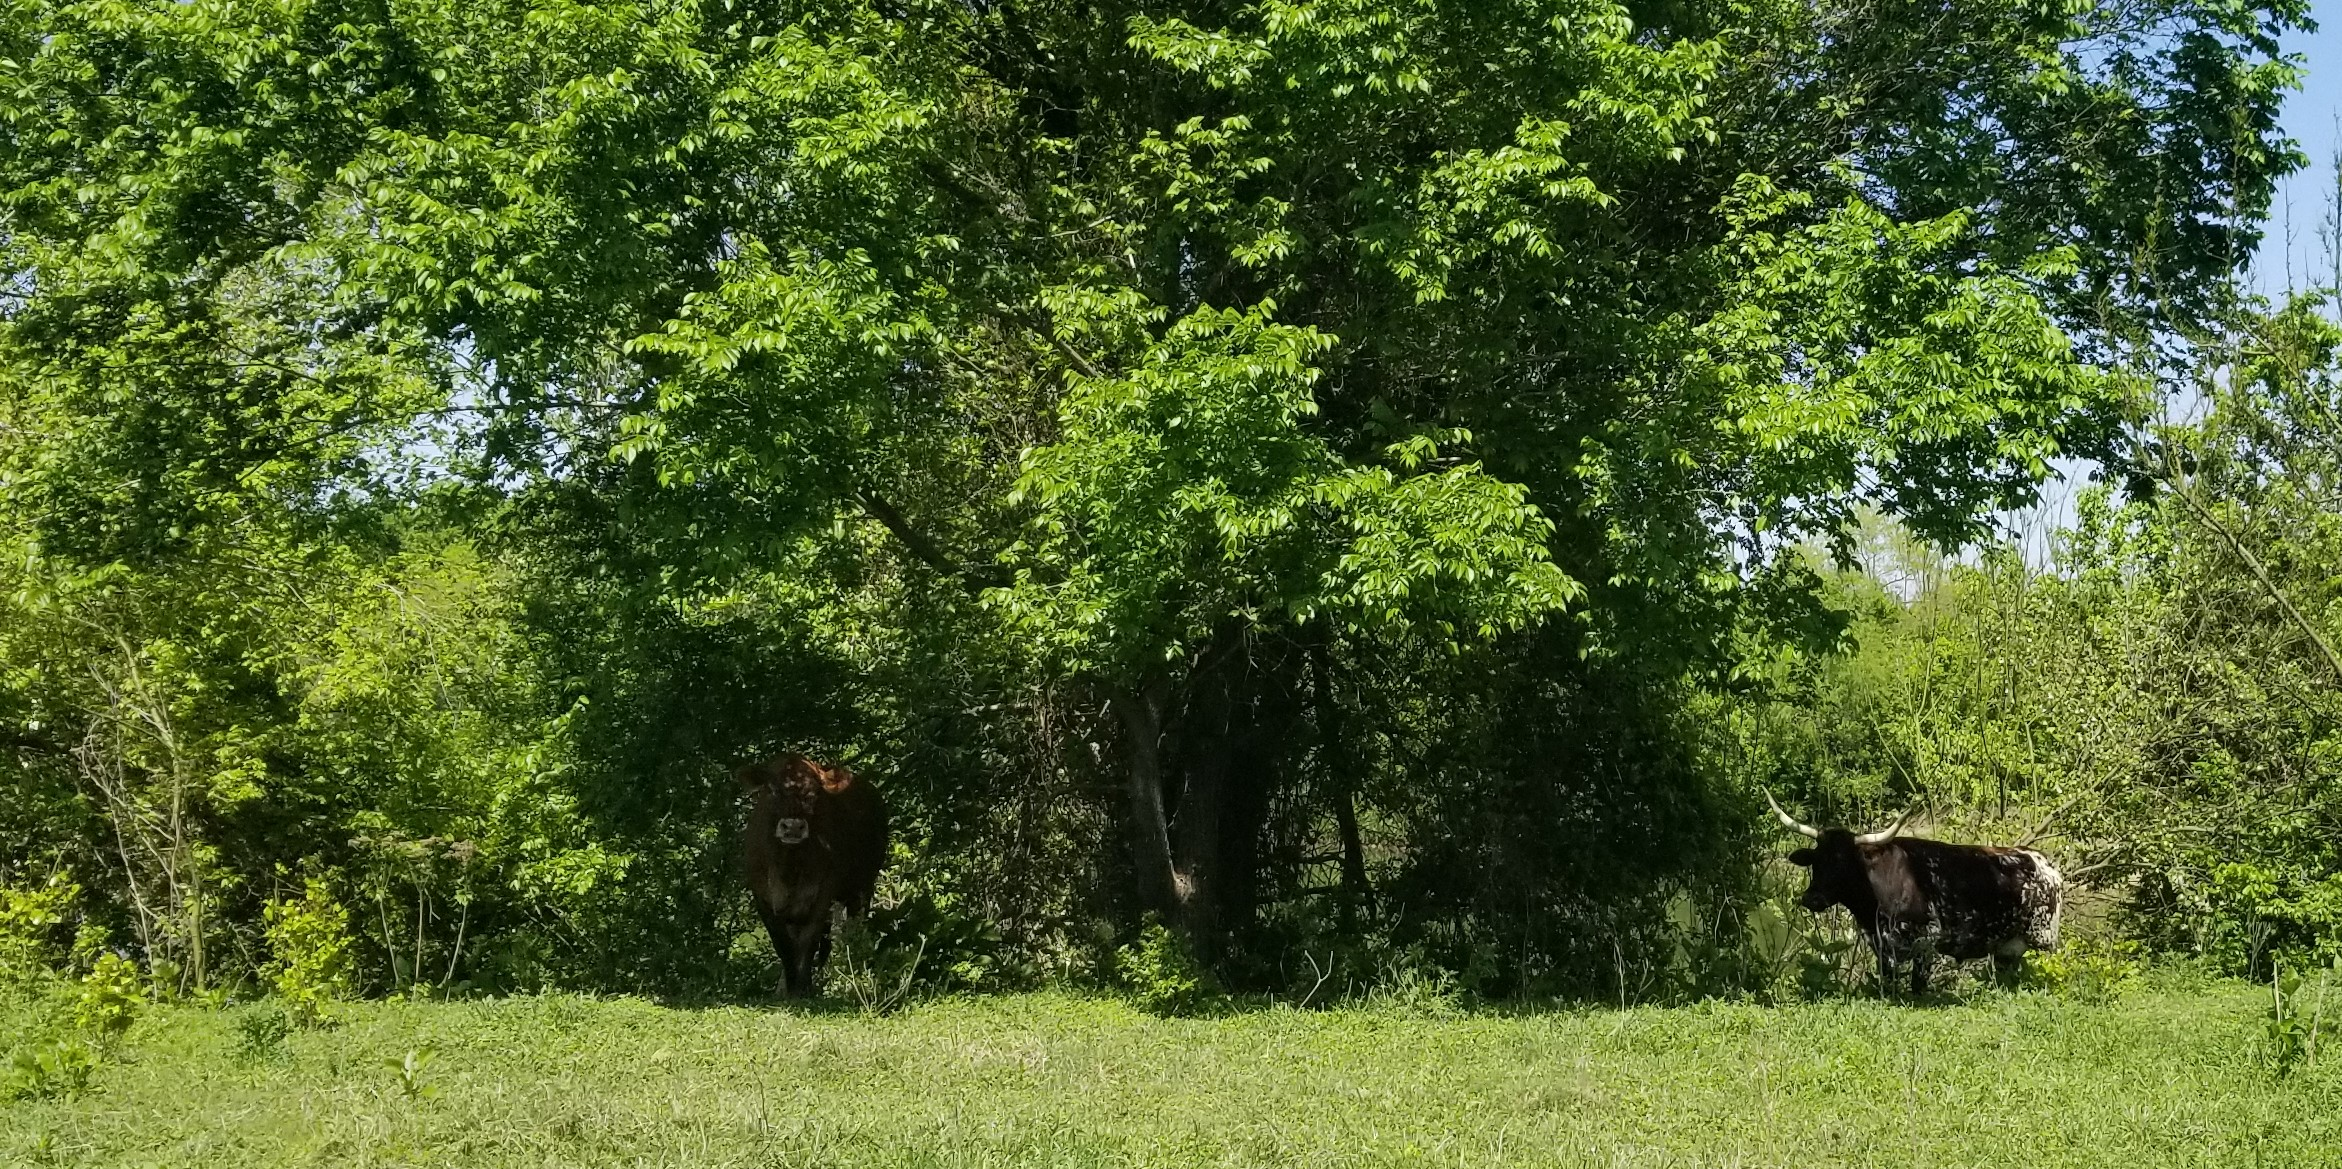 Some were interested in us, but kept their distance.  We kept our eye on that long horn!